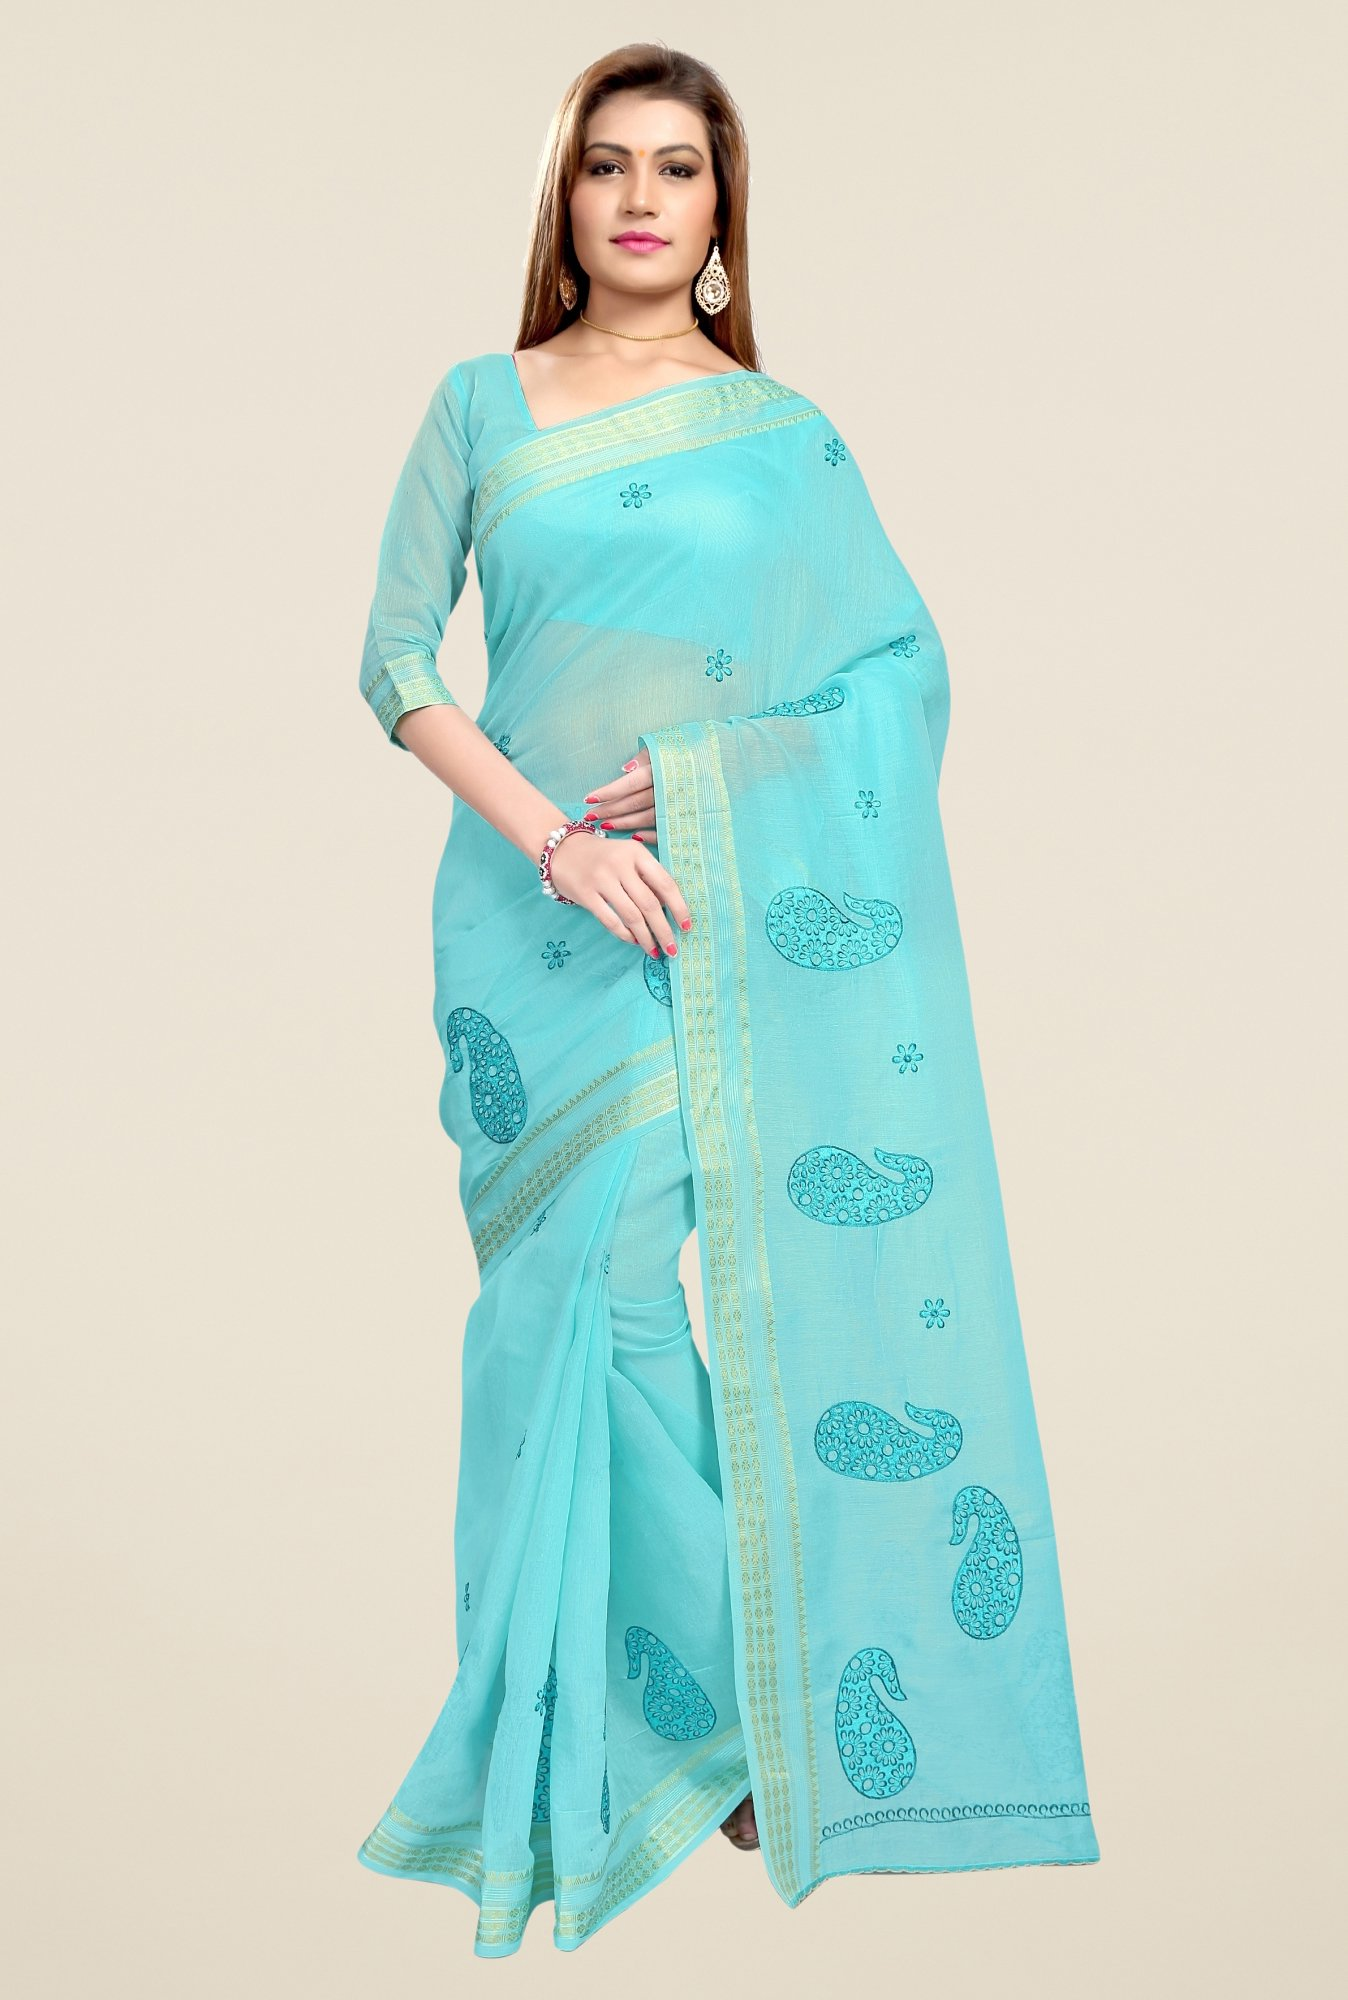 Triveni Sky Blue Paisley Print Blended Cotton Saree